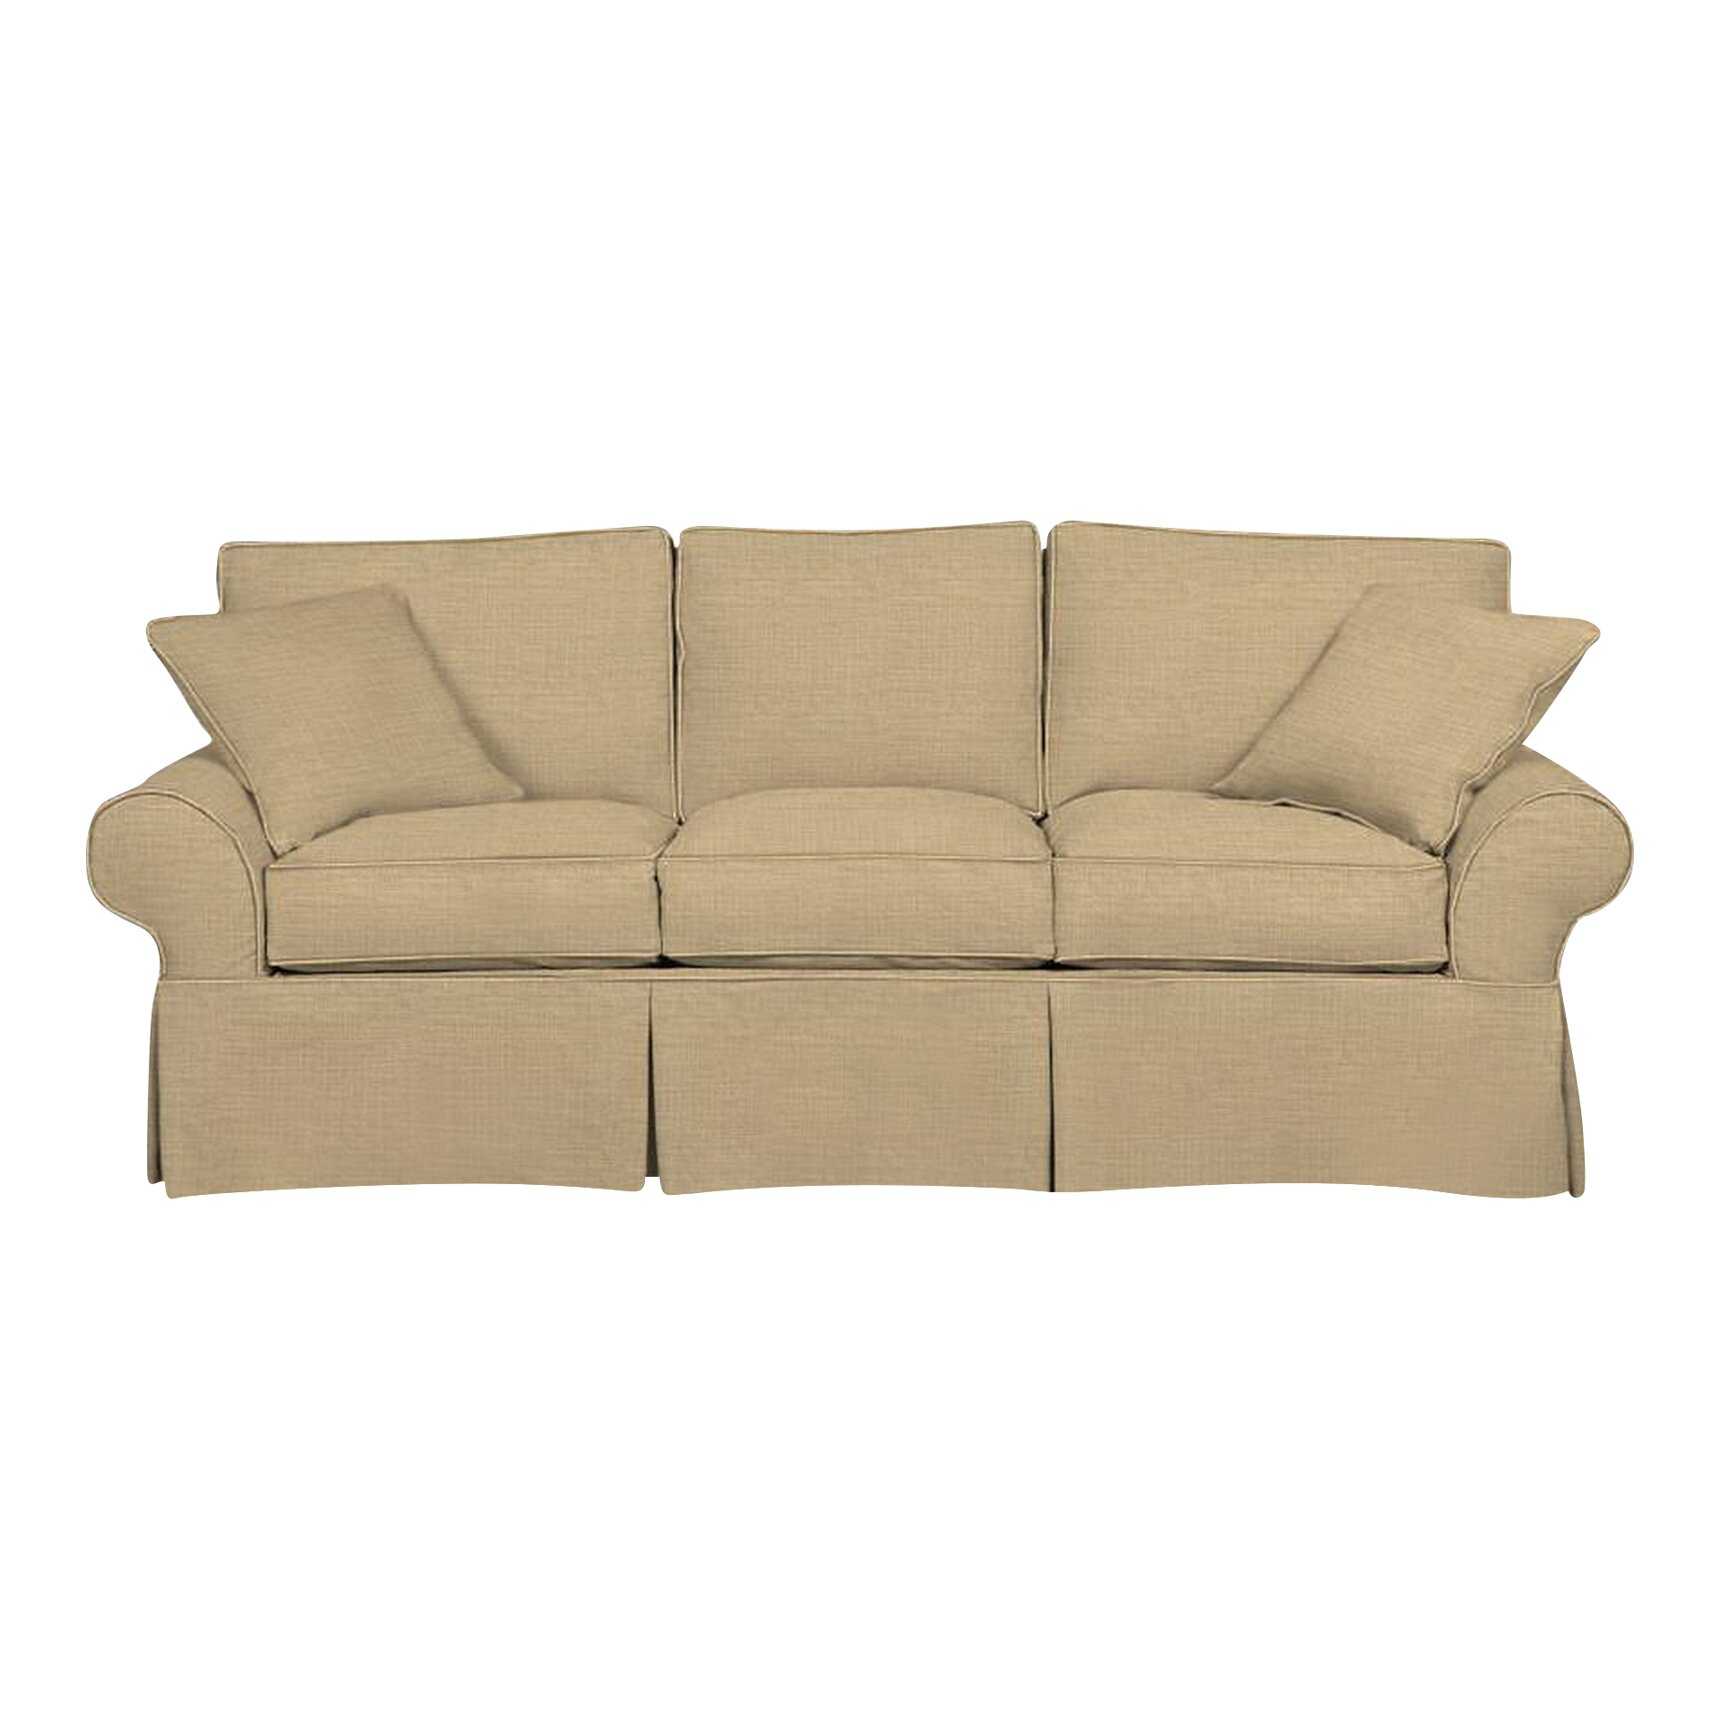 Wayfair Custom Upholstery Casey Sofa & Reviews | Wayfair